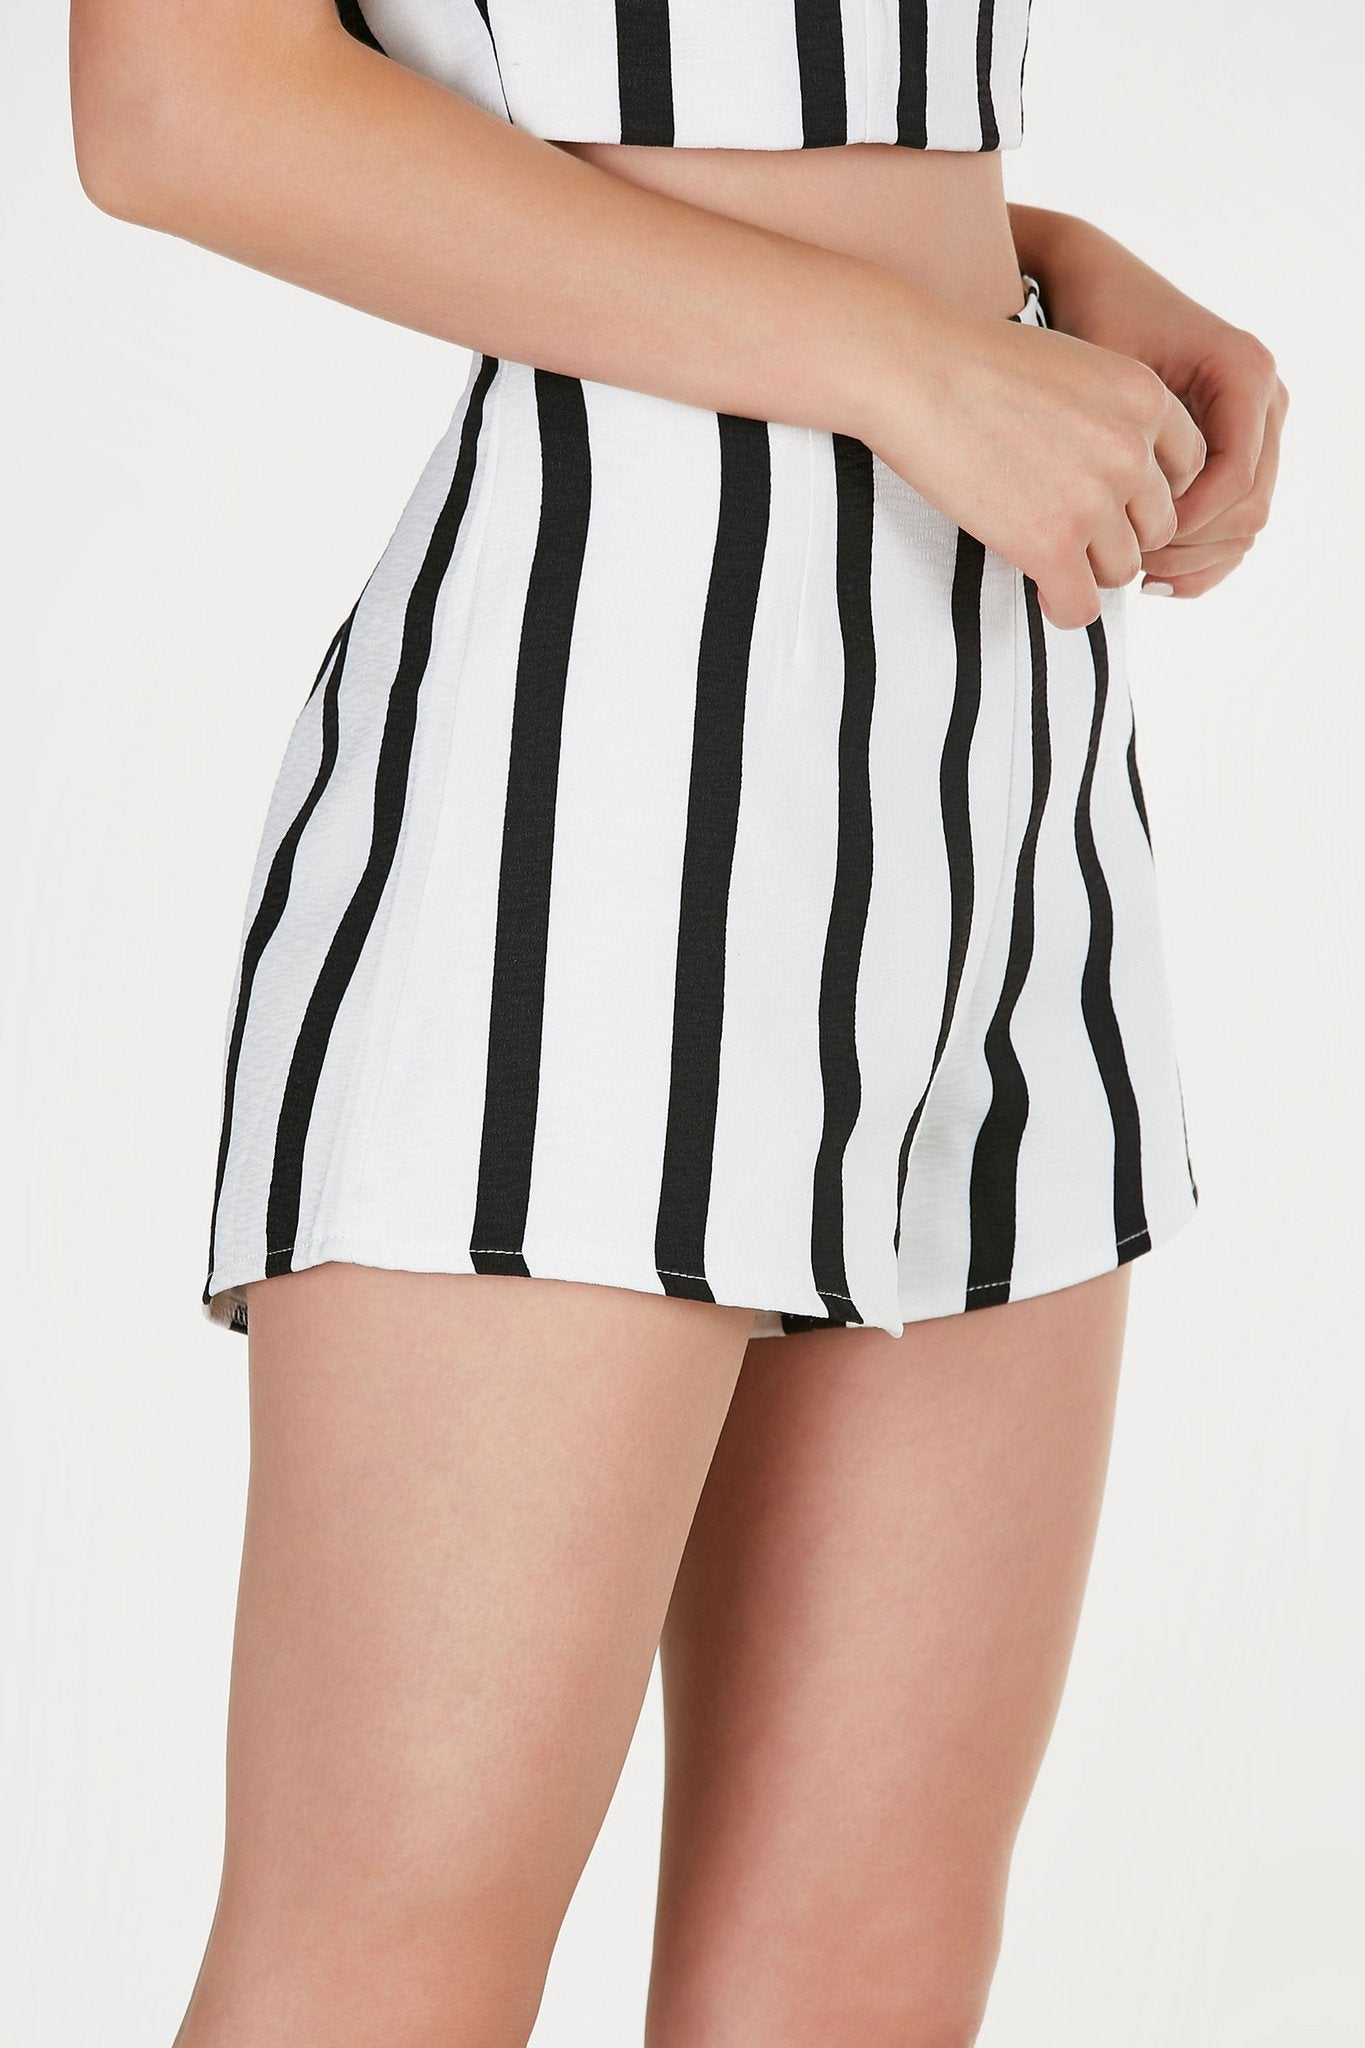 High rise shorts with bold stripe patterns throughout. Fully lined with back zip closure. Comes in a set with matching top sold separately.